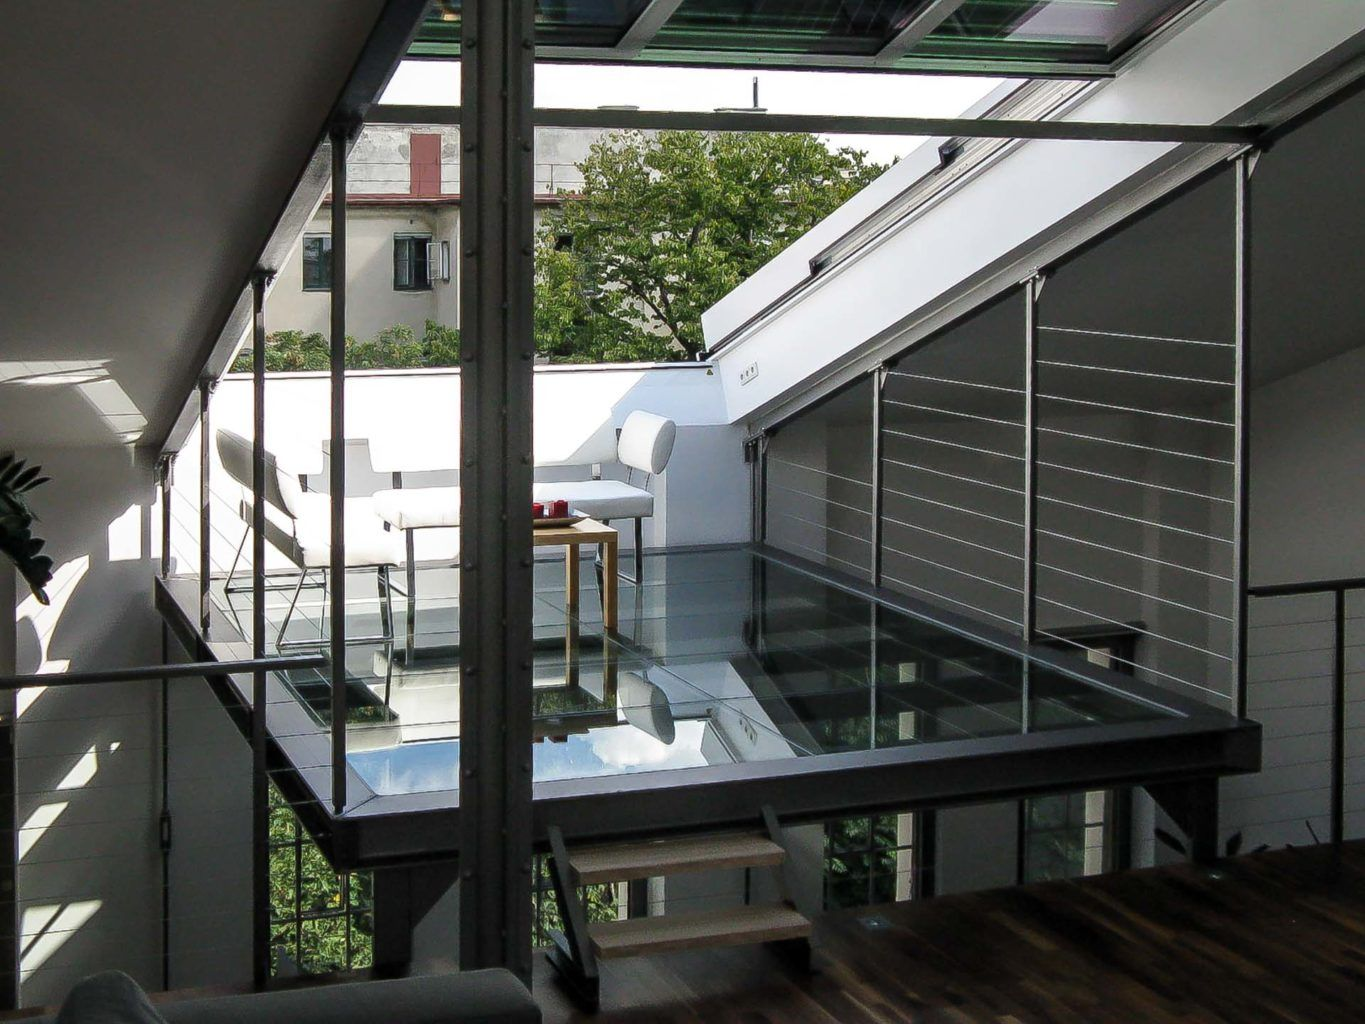 Openair Roof Sliding Window In Vienna Object 1055 Floating Roof Terrace In Vienna With Large Roof Opening Through 4 Pa Roof Architecture Roof Window Windows